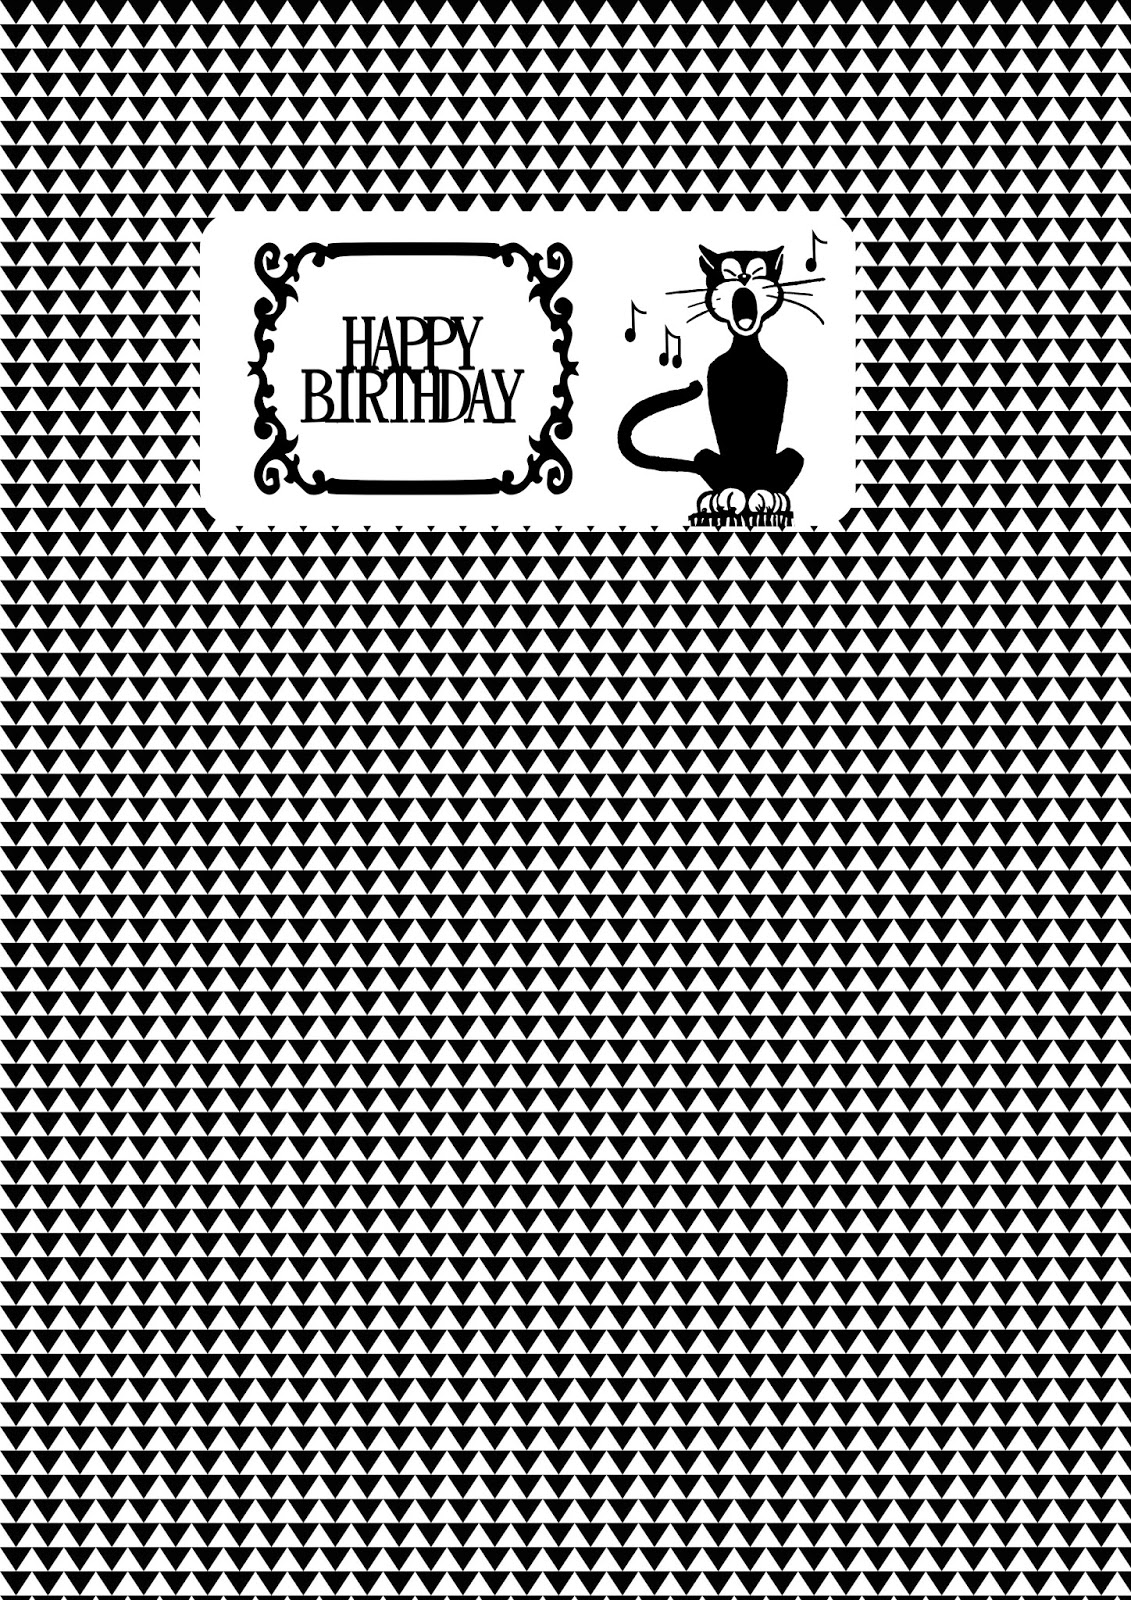 image relating to Printable Birthday Wrapping Paper referred to as Cost-free printable birthday chocolate wrap paper - ausdruckbares